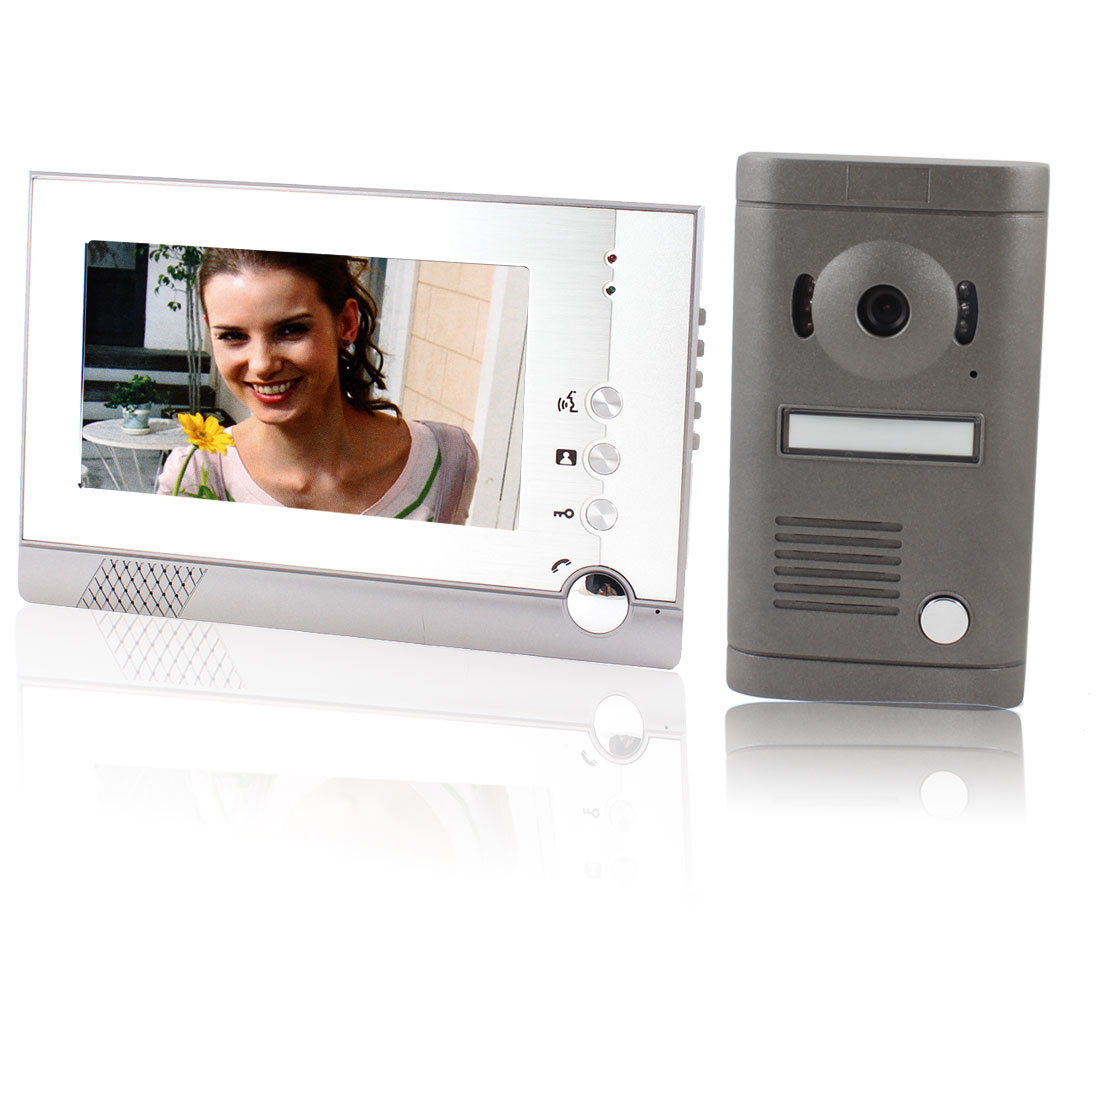 "7"" TFT LCD Home Security Monitor Video Door Phone Doorbell US Plug"